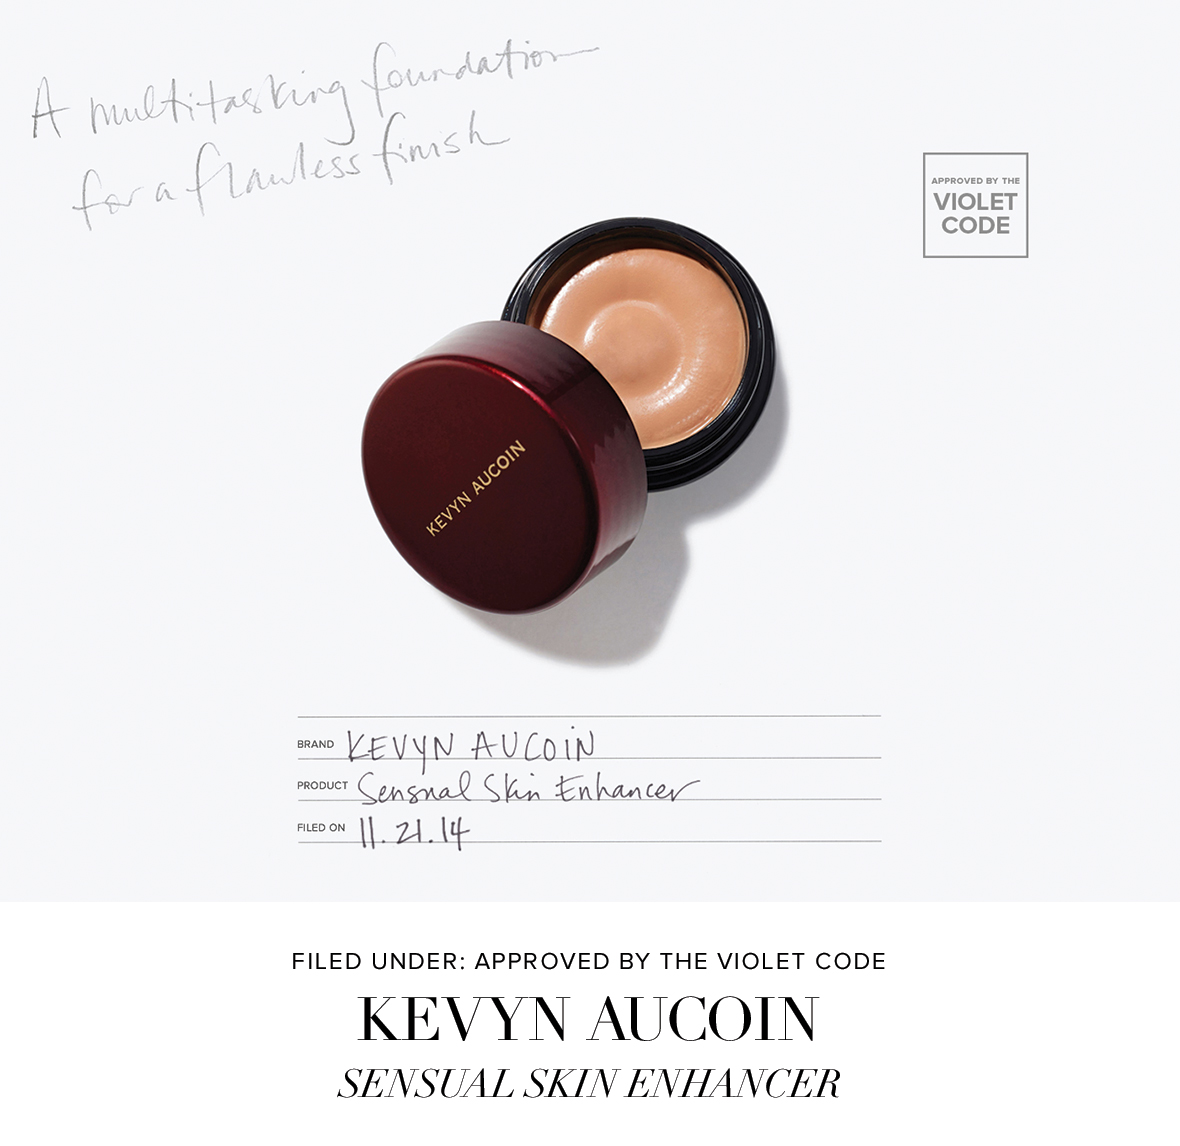 Filed Under: Approved by the Violet Code - Kevyn Aucoin